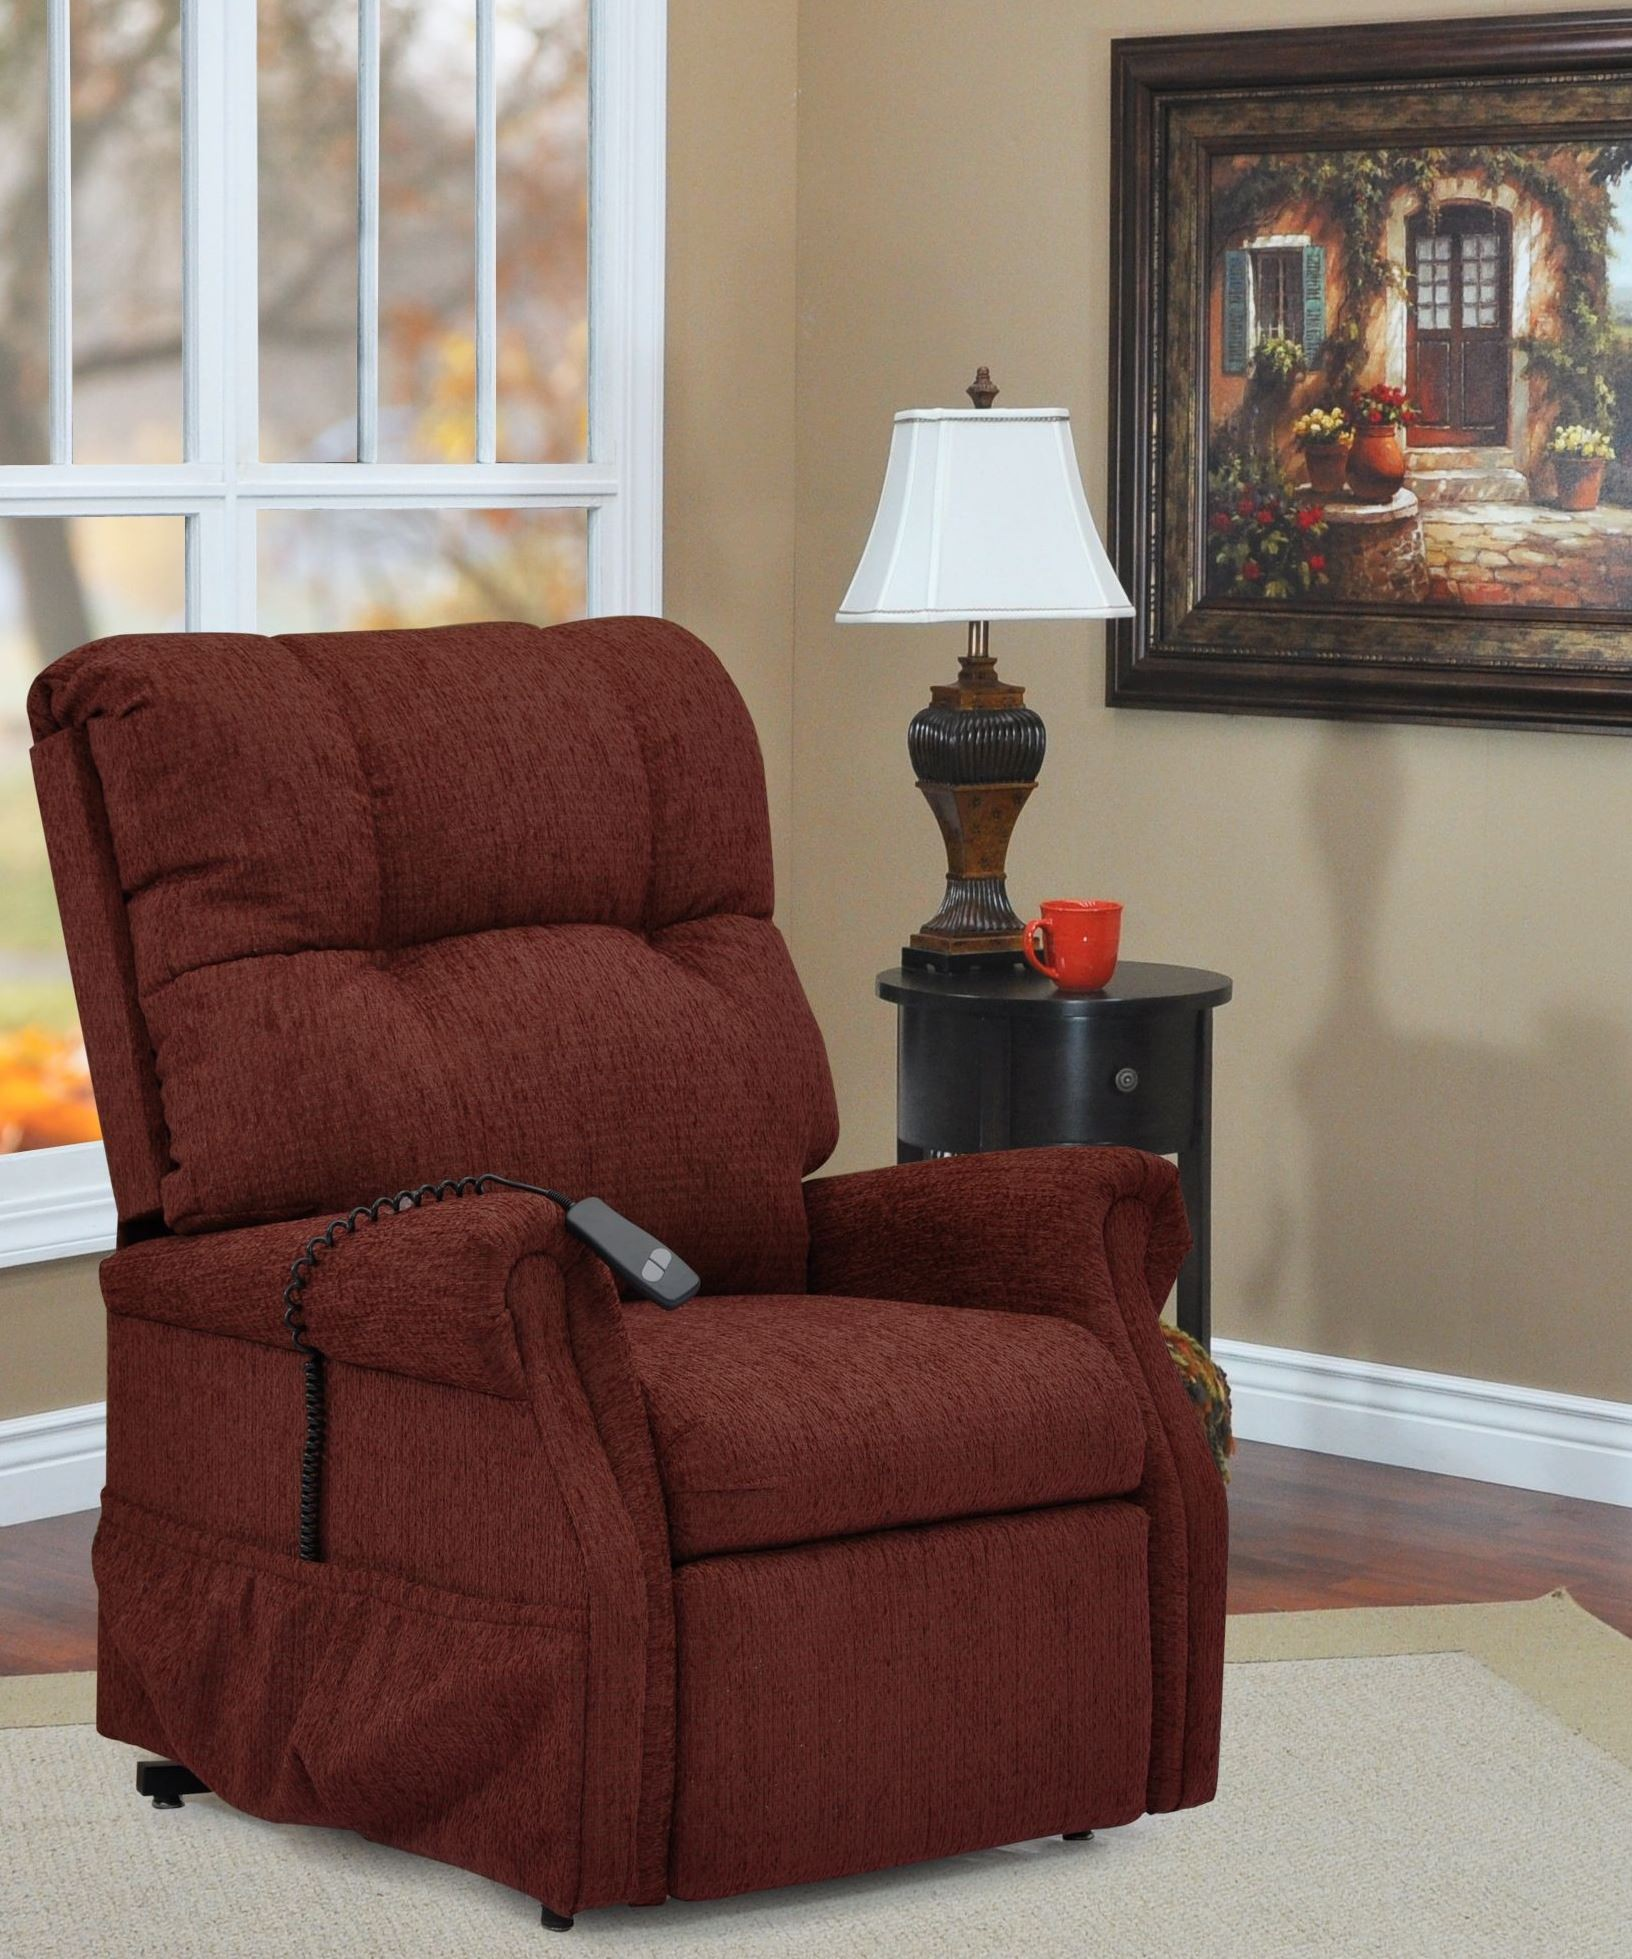 Dawson Maroon Three Way Reclining Lift Chair From Med Lift Coleman Furniture